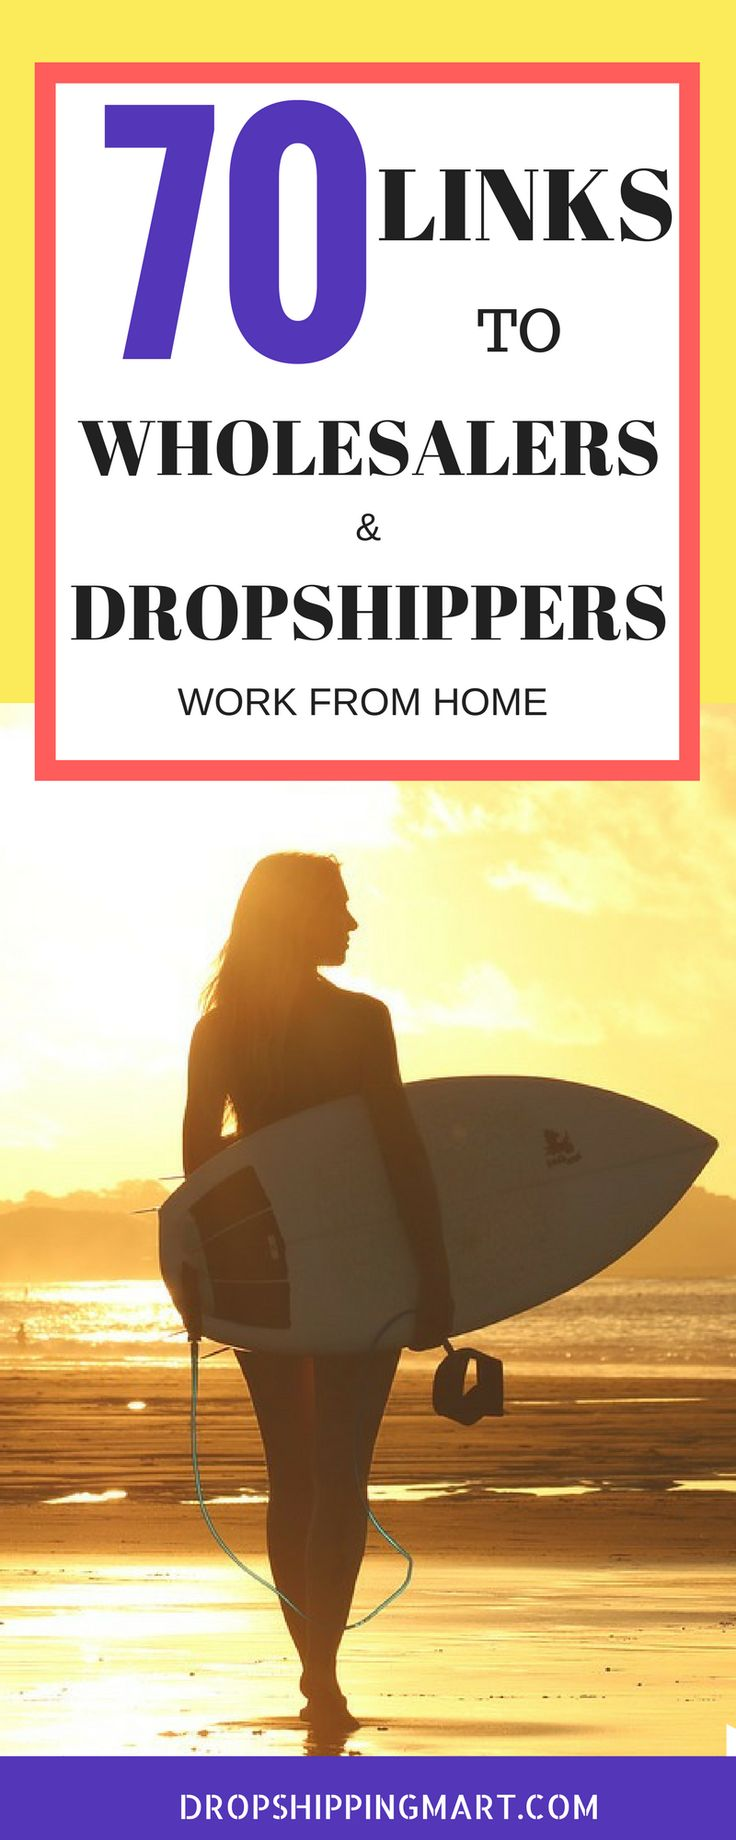 The Ultimate Dropshipper List of 70 Suppliers by Niche that will make you money.